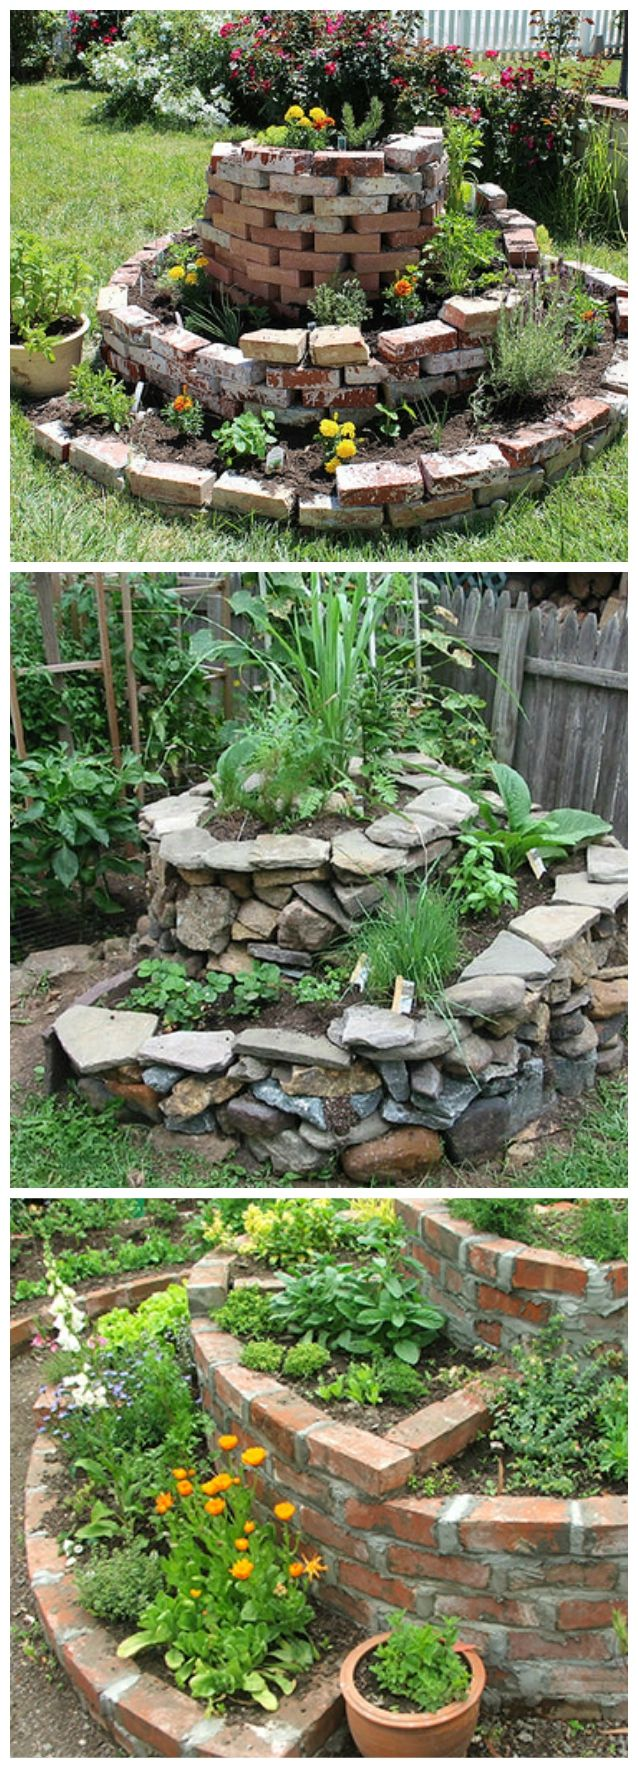 How To Build A Herb Spiral